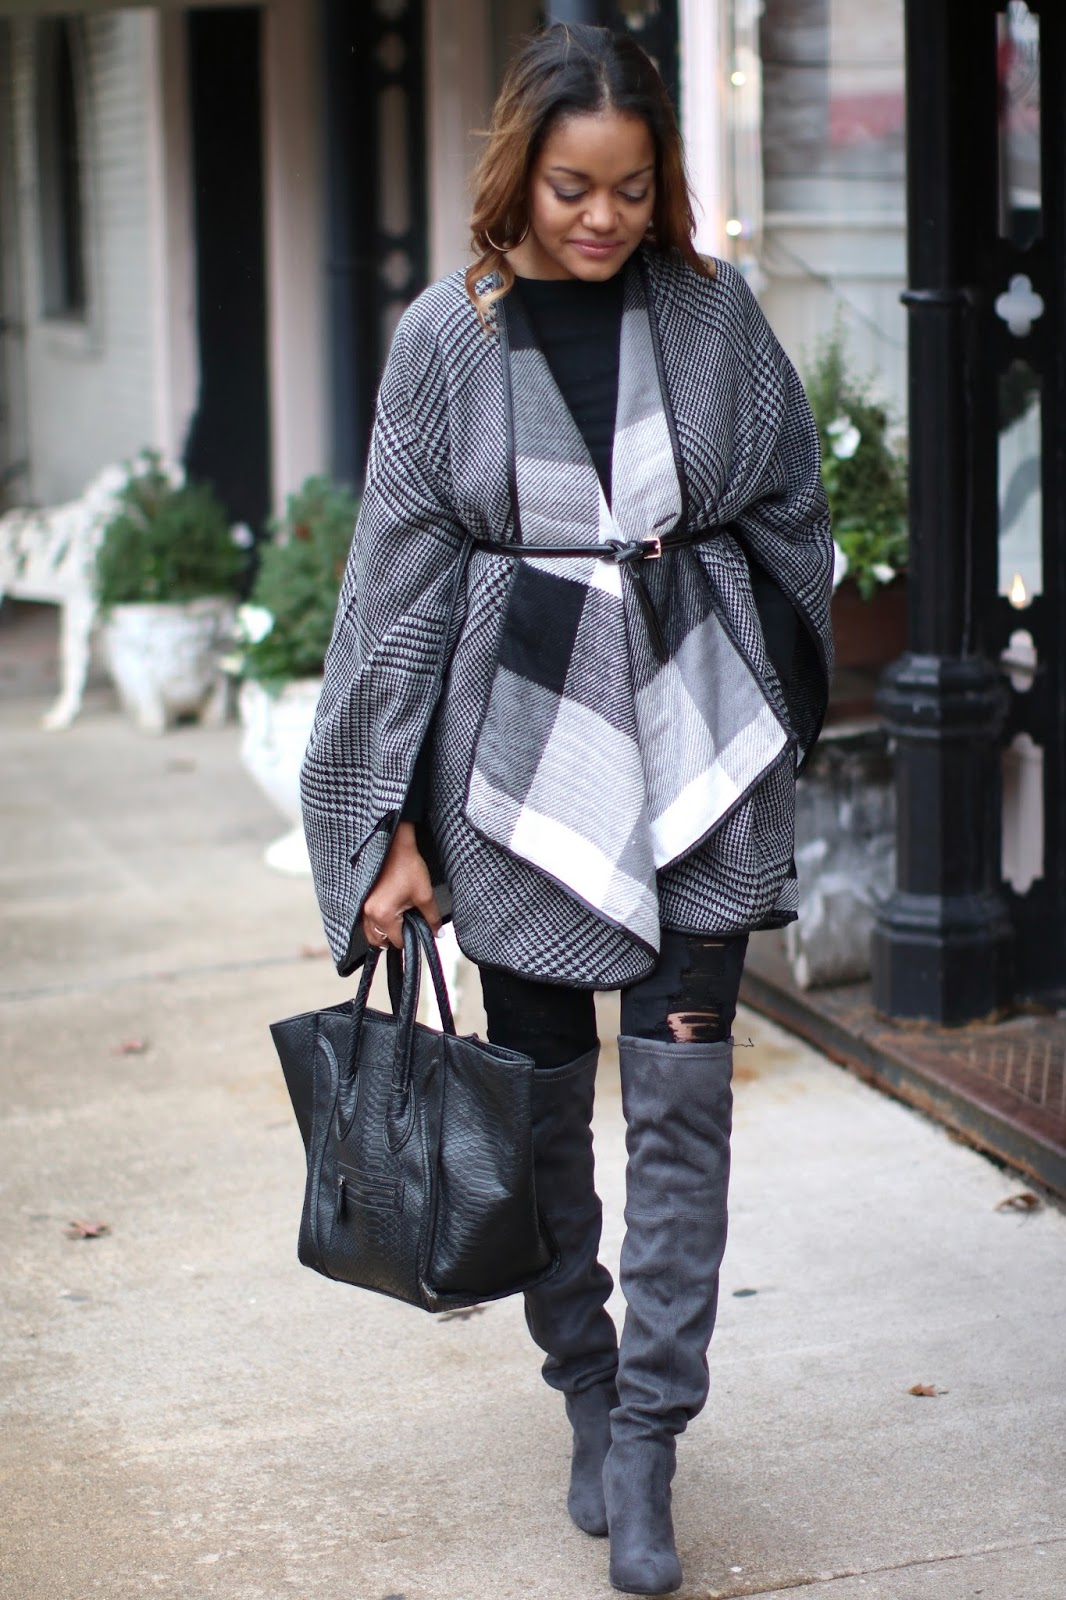 fashion blogger, dallas blogger, black girl blogger, steve madden GORGEOUS boot, otk boot, over the knee boot, celine luggage look for less, Asos cape, reversible cape, how to wear a cape, stuart weitzman highland dupe, look for less stuart weitzman